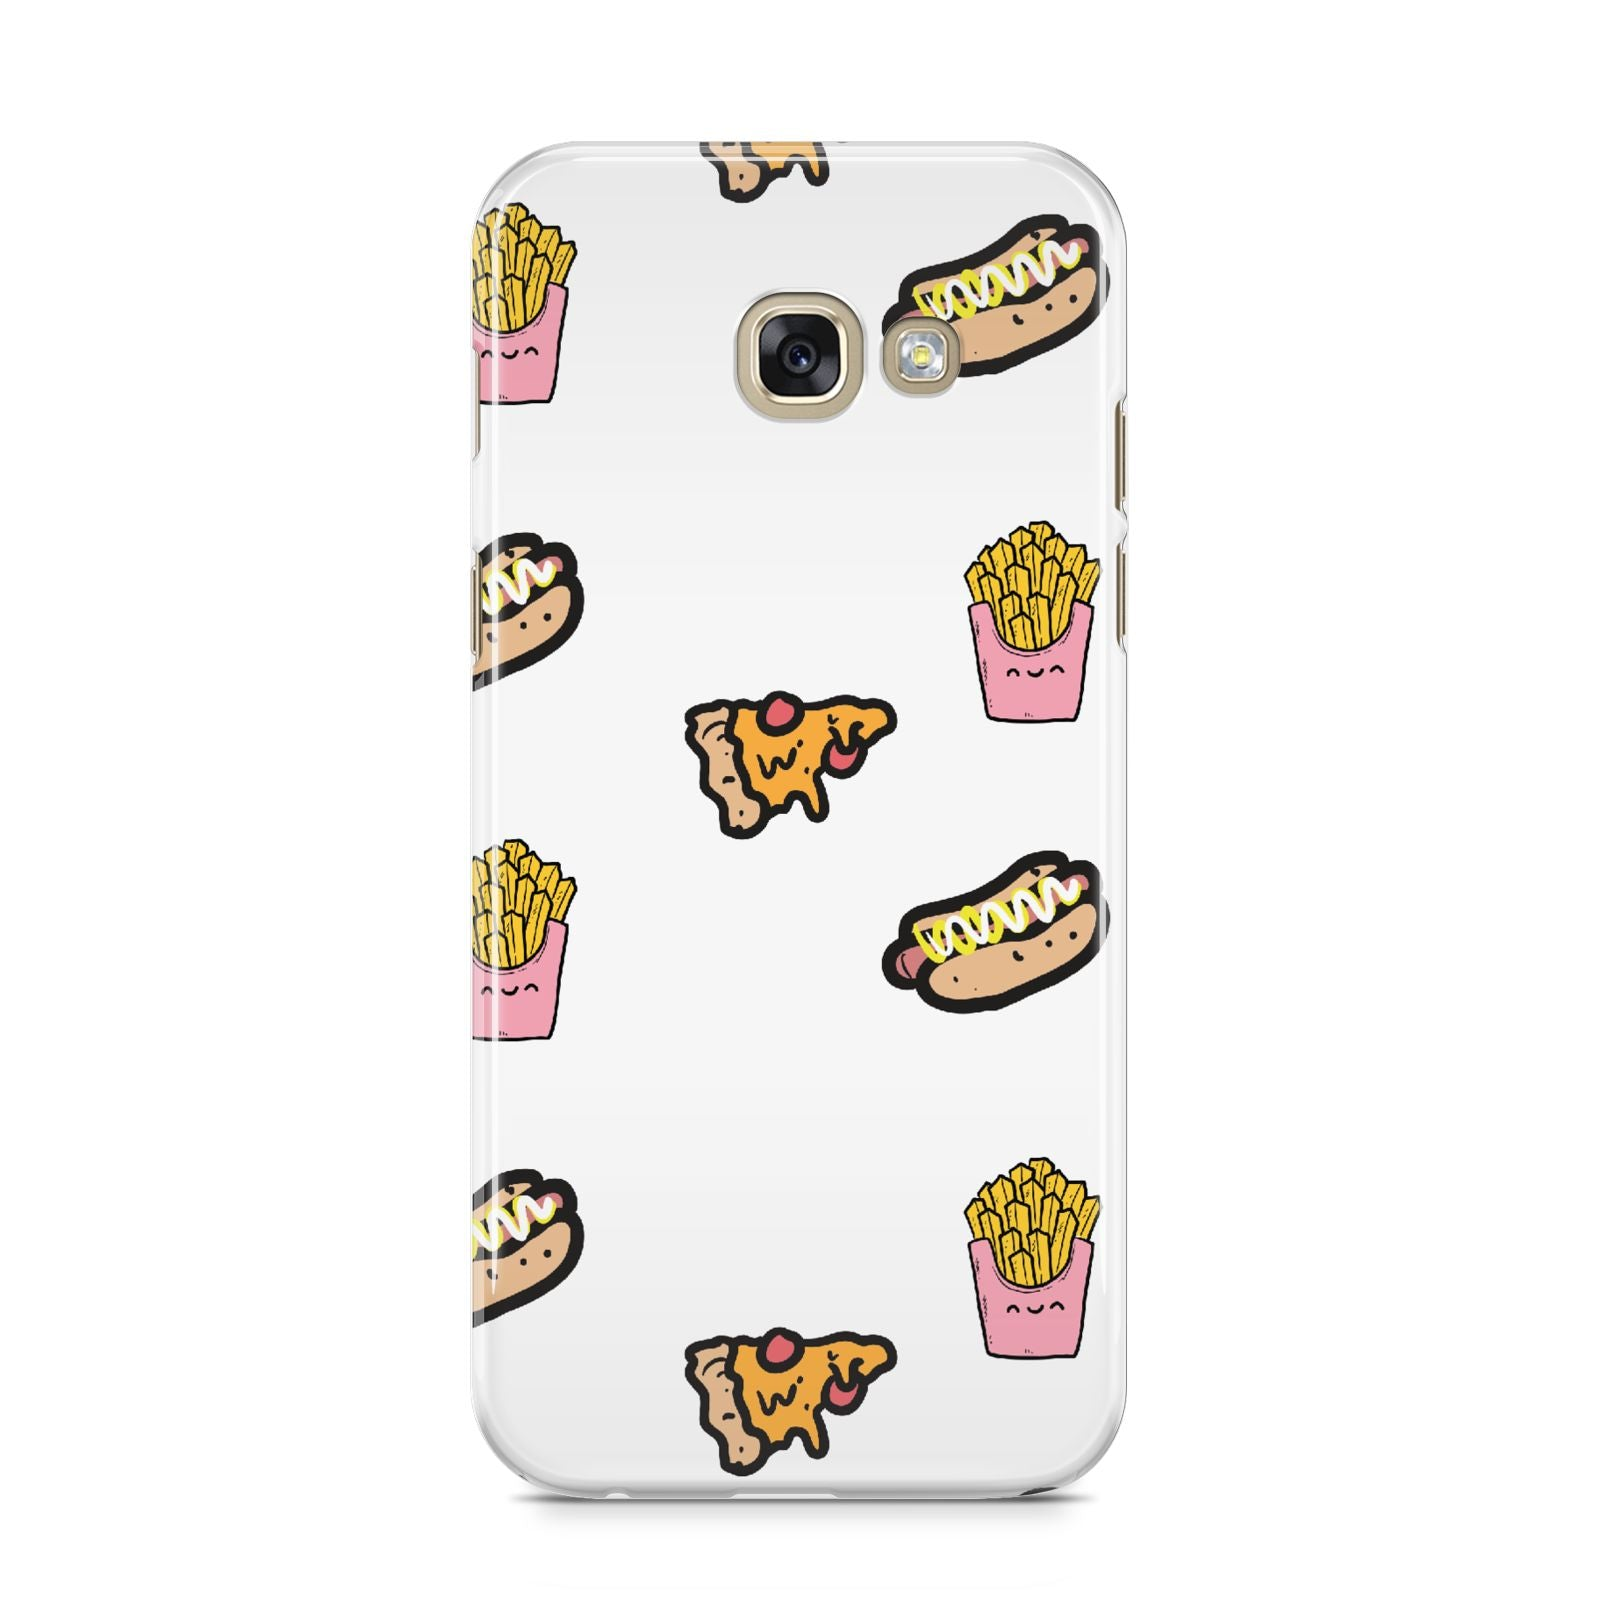 Fries Pizza Hot Dog Samsung Galaxy A5 2017 Case on gold phone